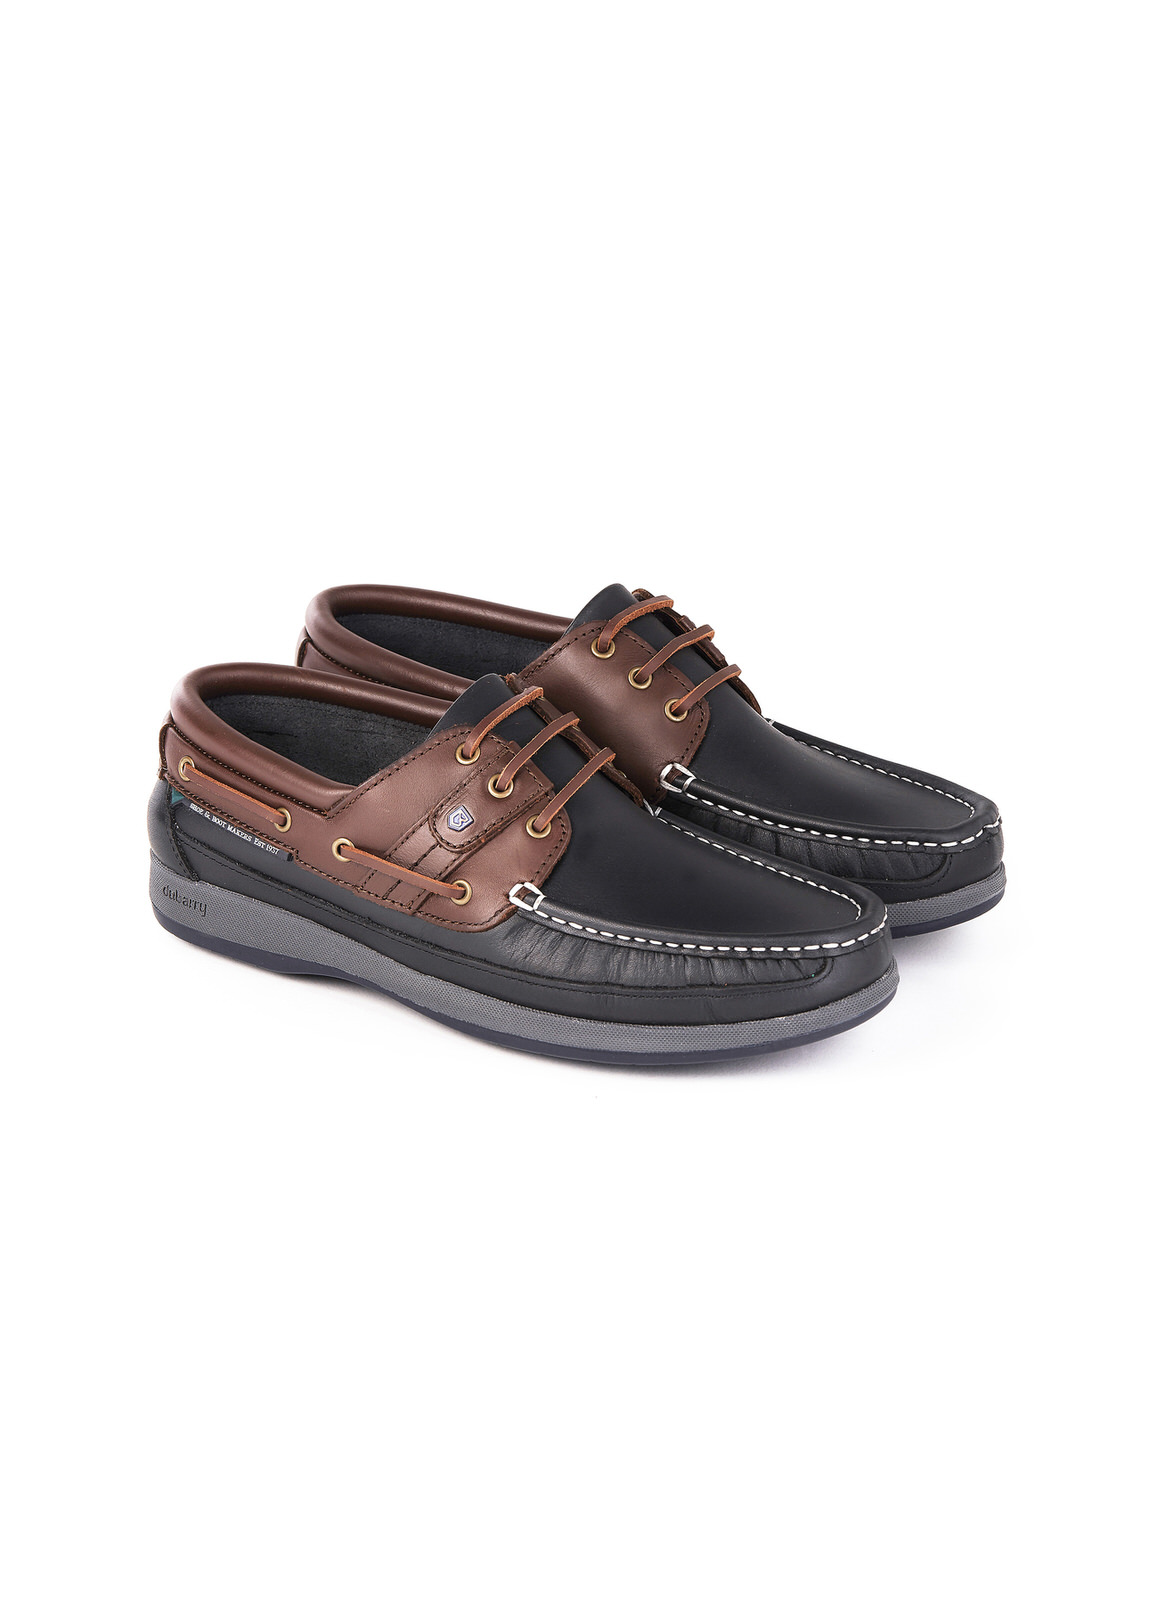 Atlantic_Deck_Shoe_Plum_Image_1